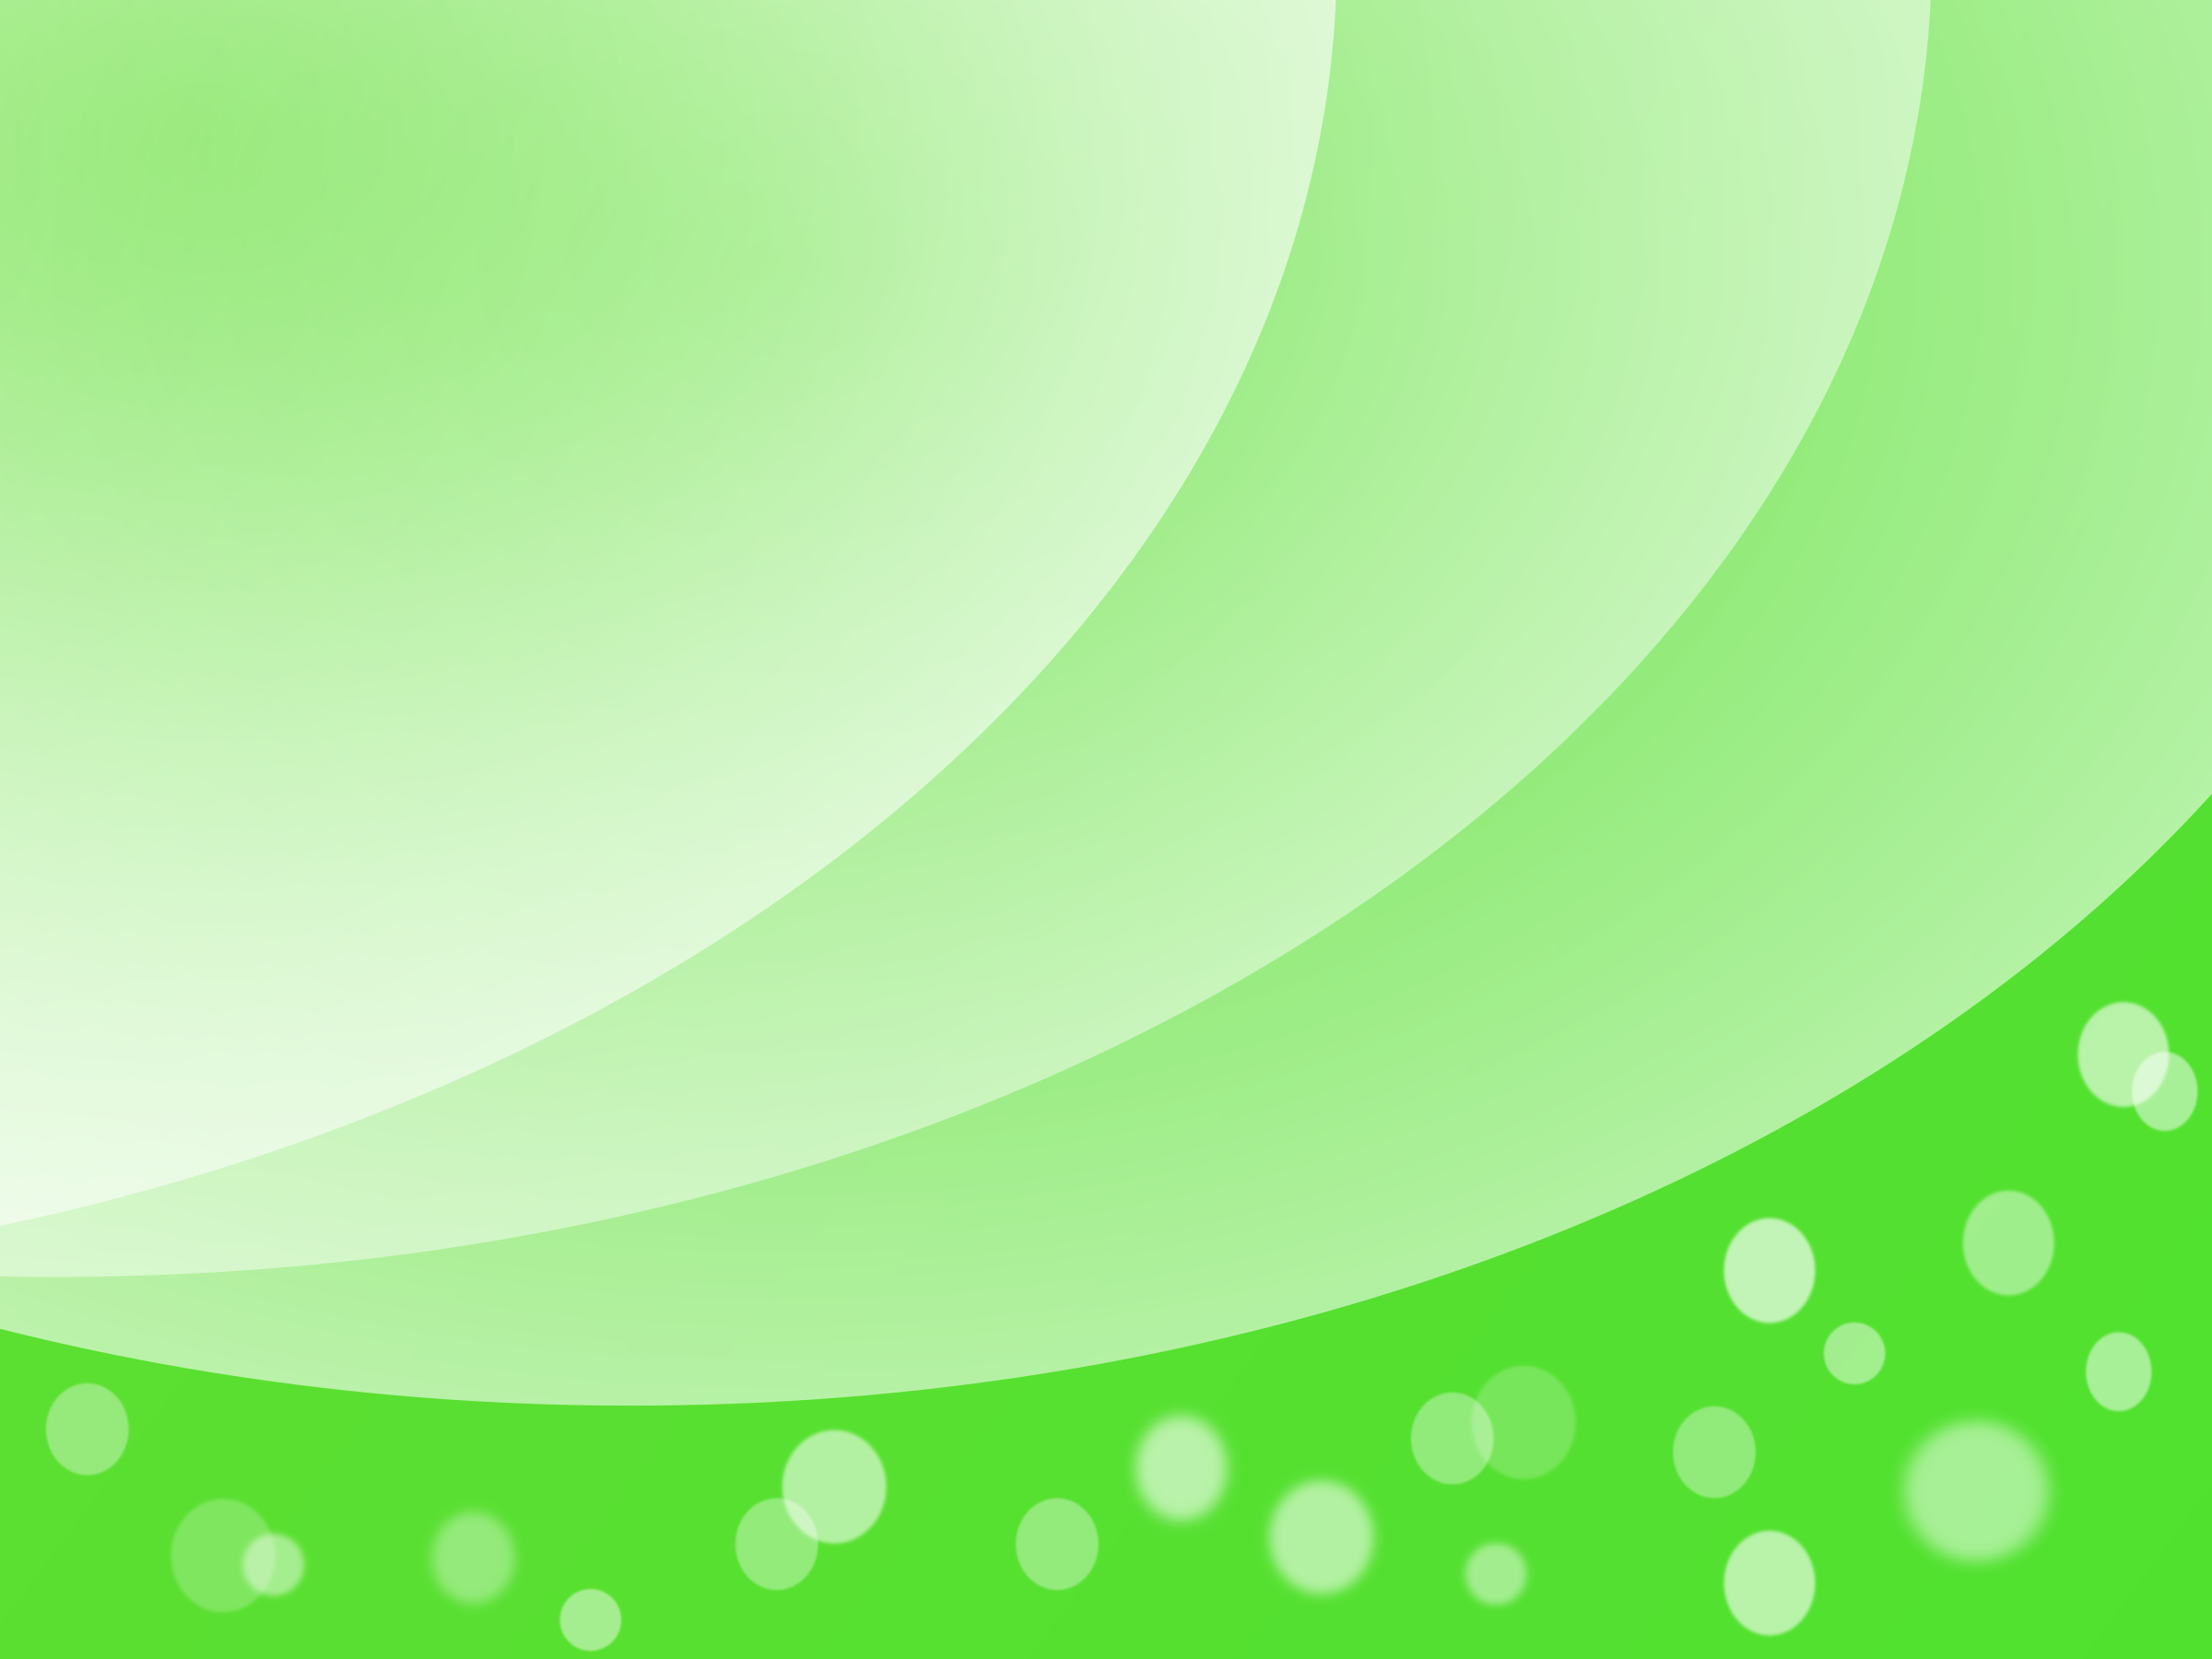 Clipart Green White Wallpaper Adorable Wallpapers Pinterest